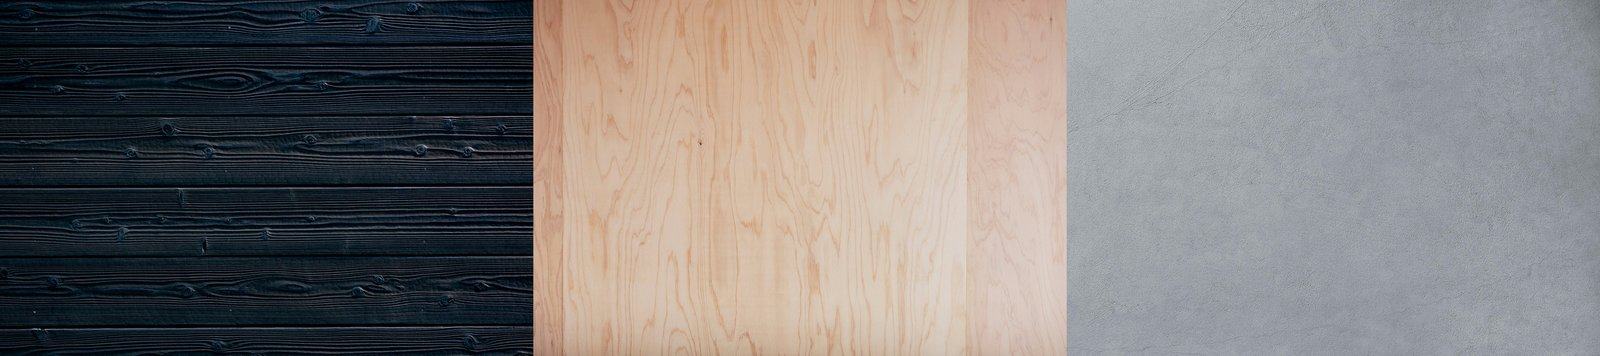 Burnt cedar, Japanese cypress plywood, and mortar create a trio of contrasting yet simple surface textures that breath a relaxed vibe into the Muji Hut. The Muji Hut is a Masterful Take on Minimalism - Photo 5 of 7